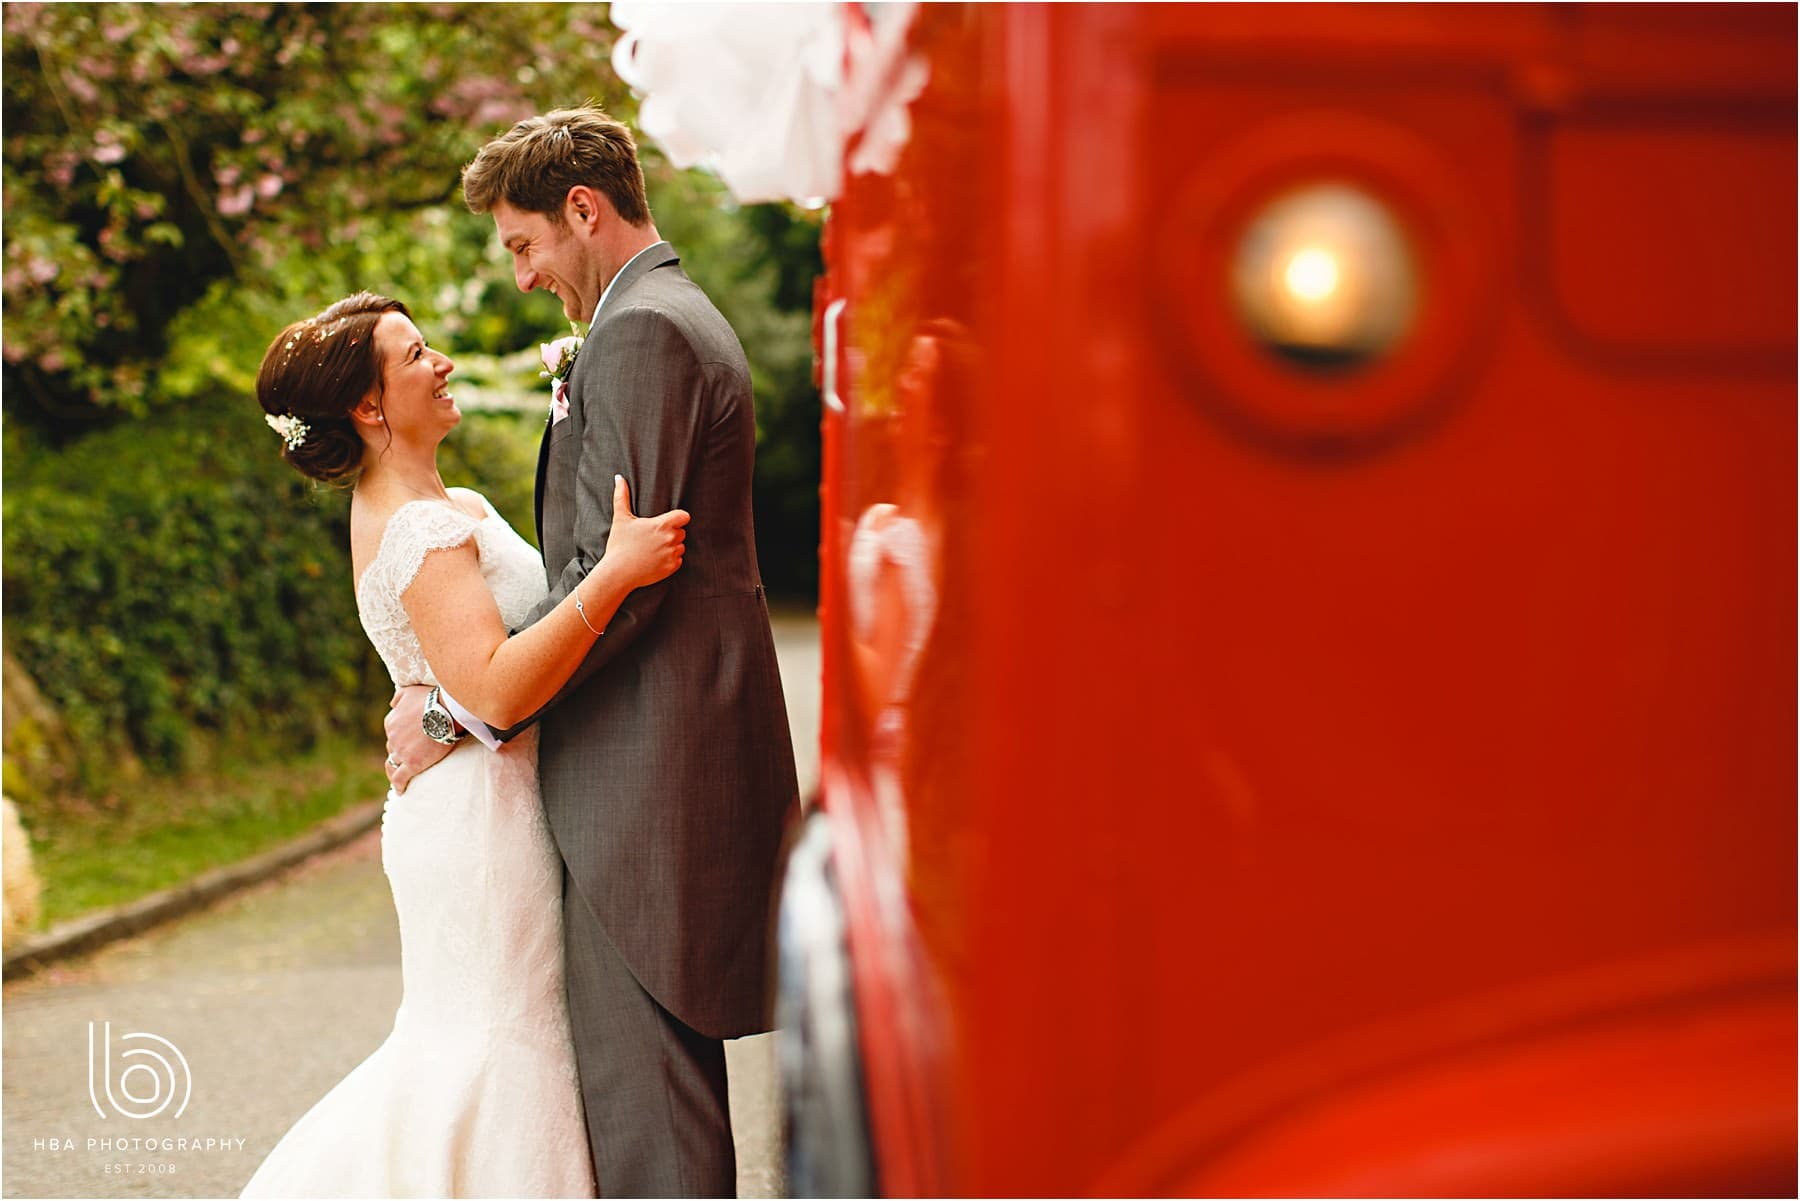 Shustoke_Farm_Barns_Wedding_Photos_Emma_Tom_0029